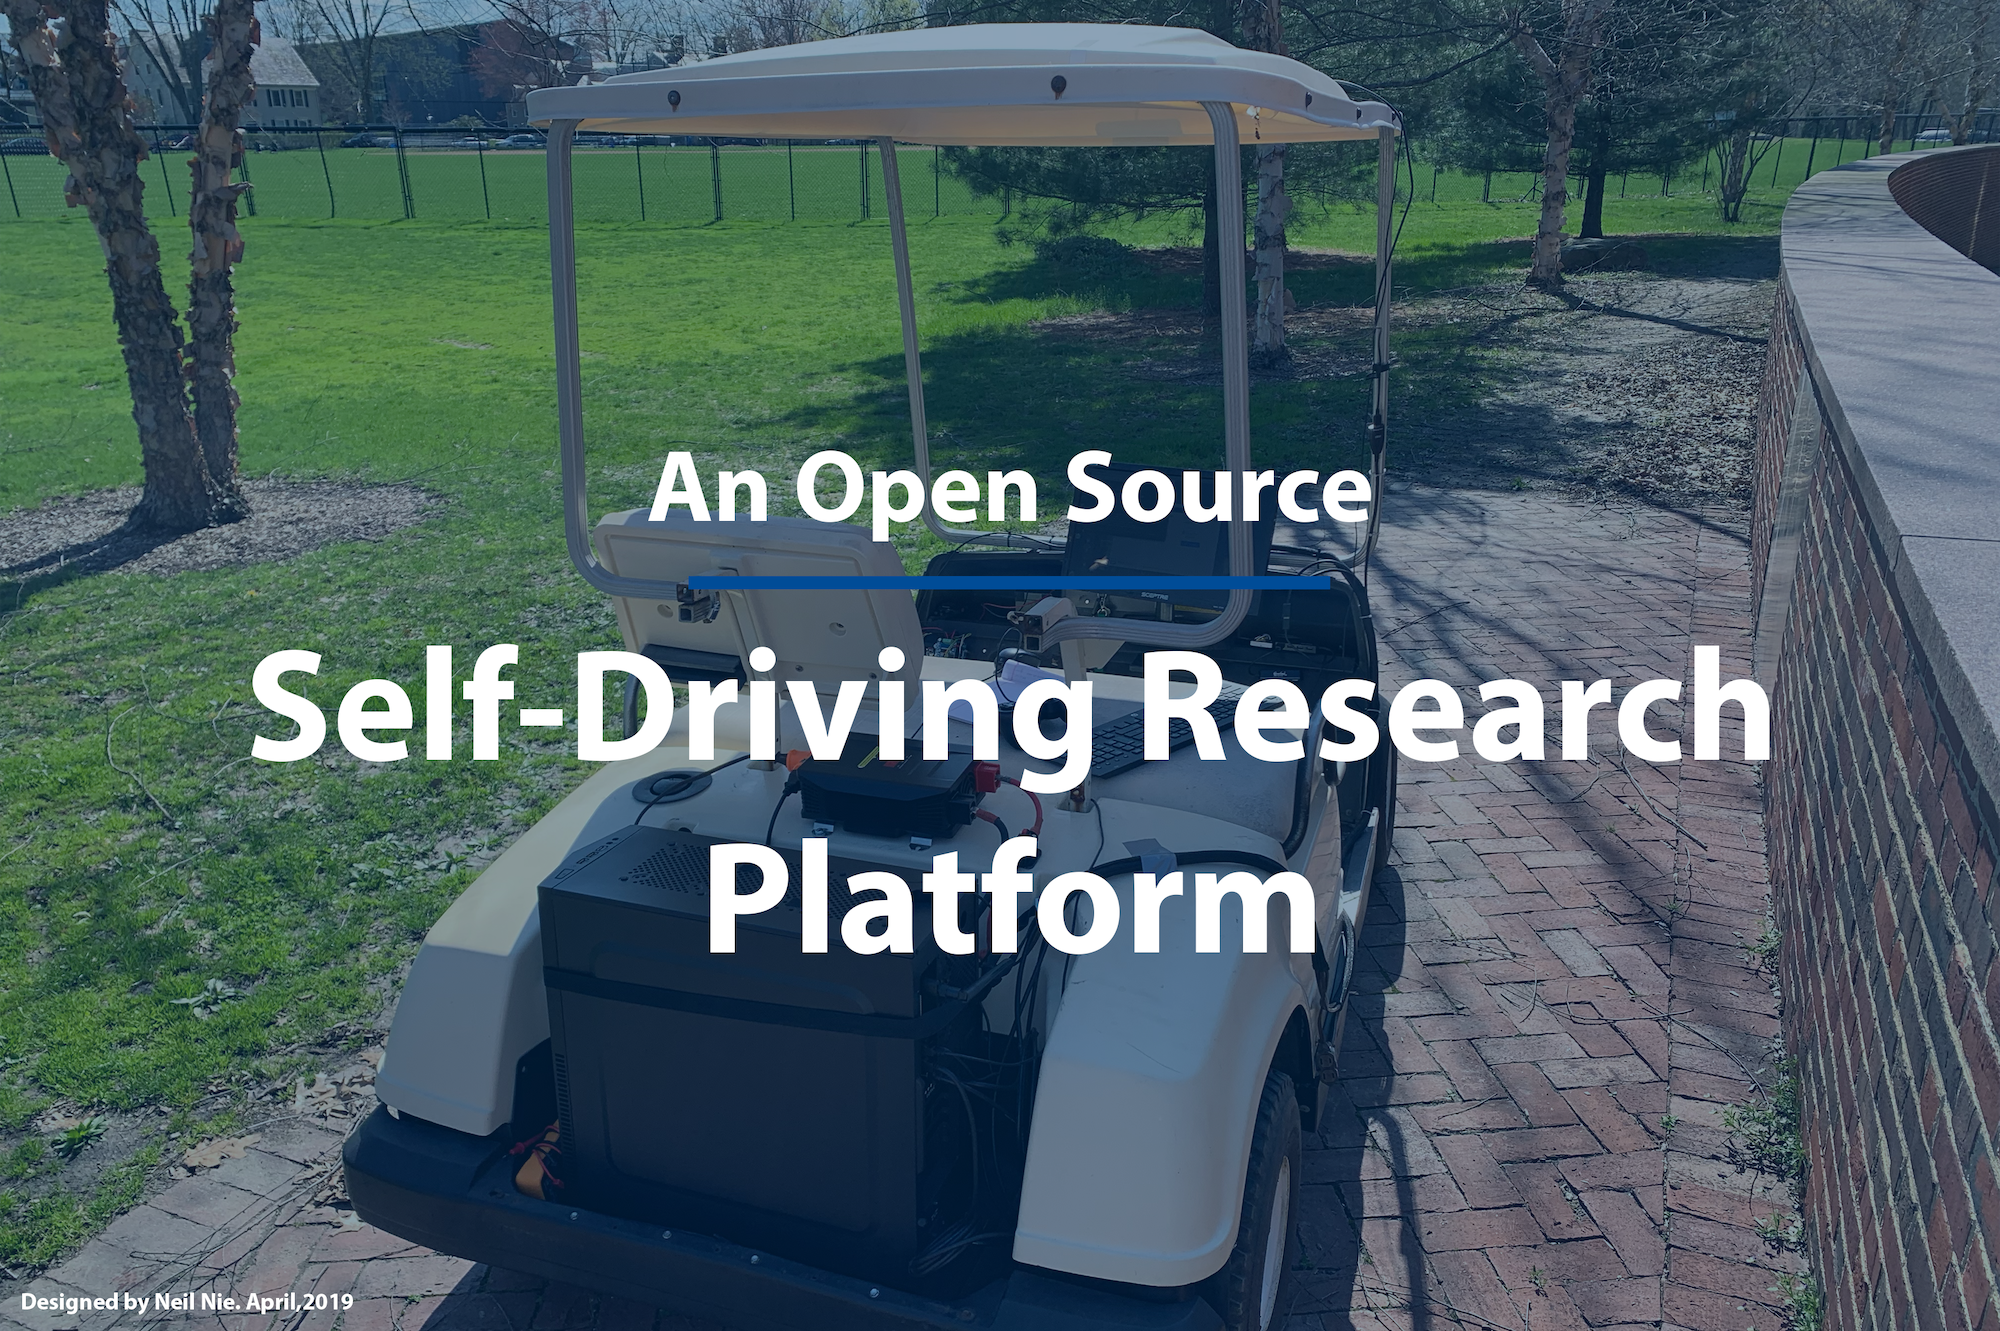 https://github.com/sigmaai/self-driving-golf-cart/raw/master/media/cover.png